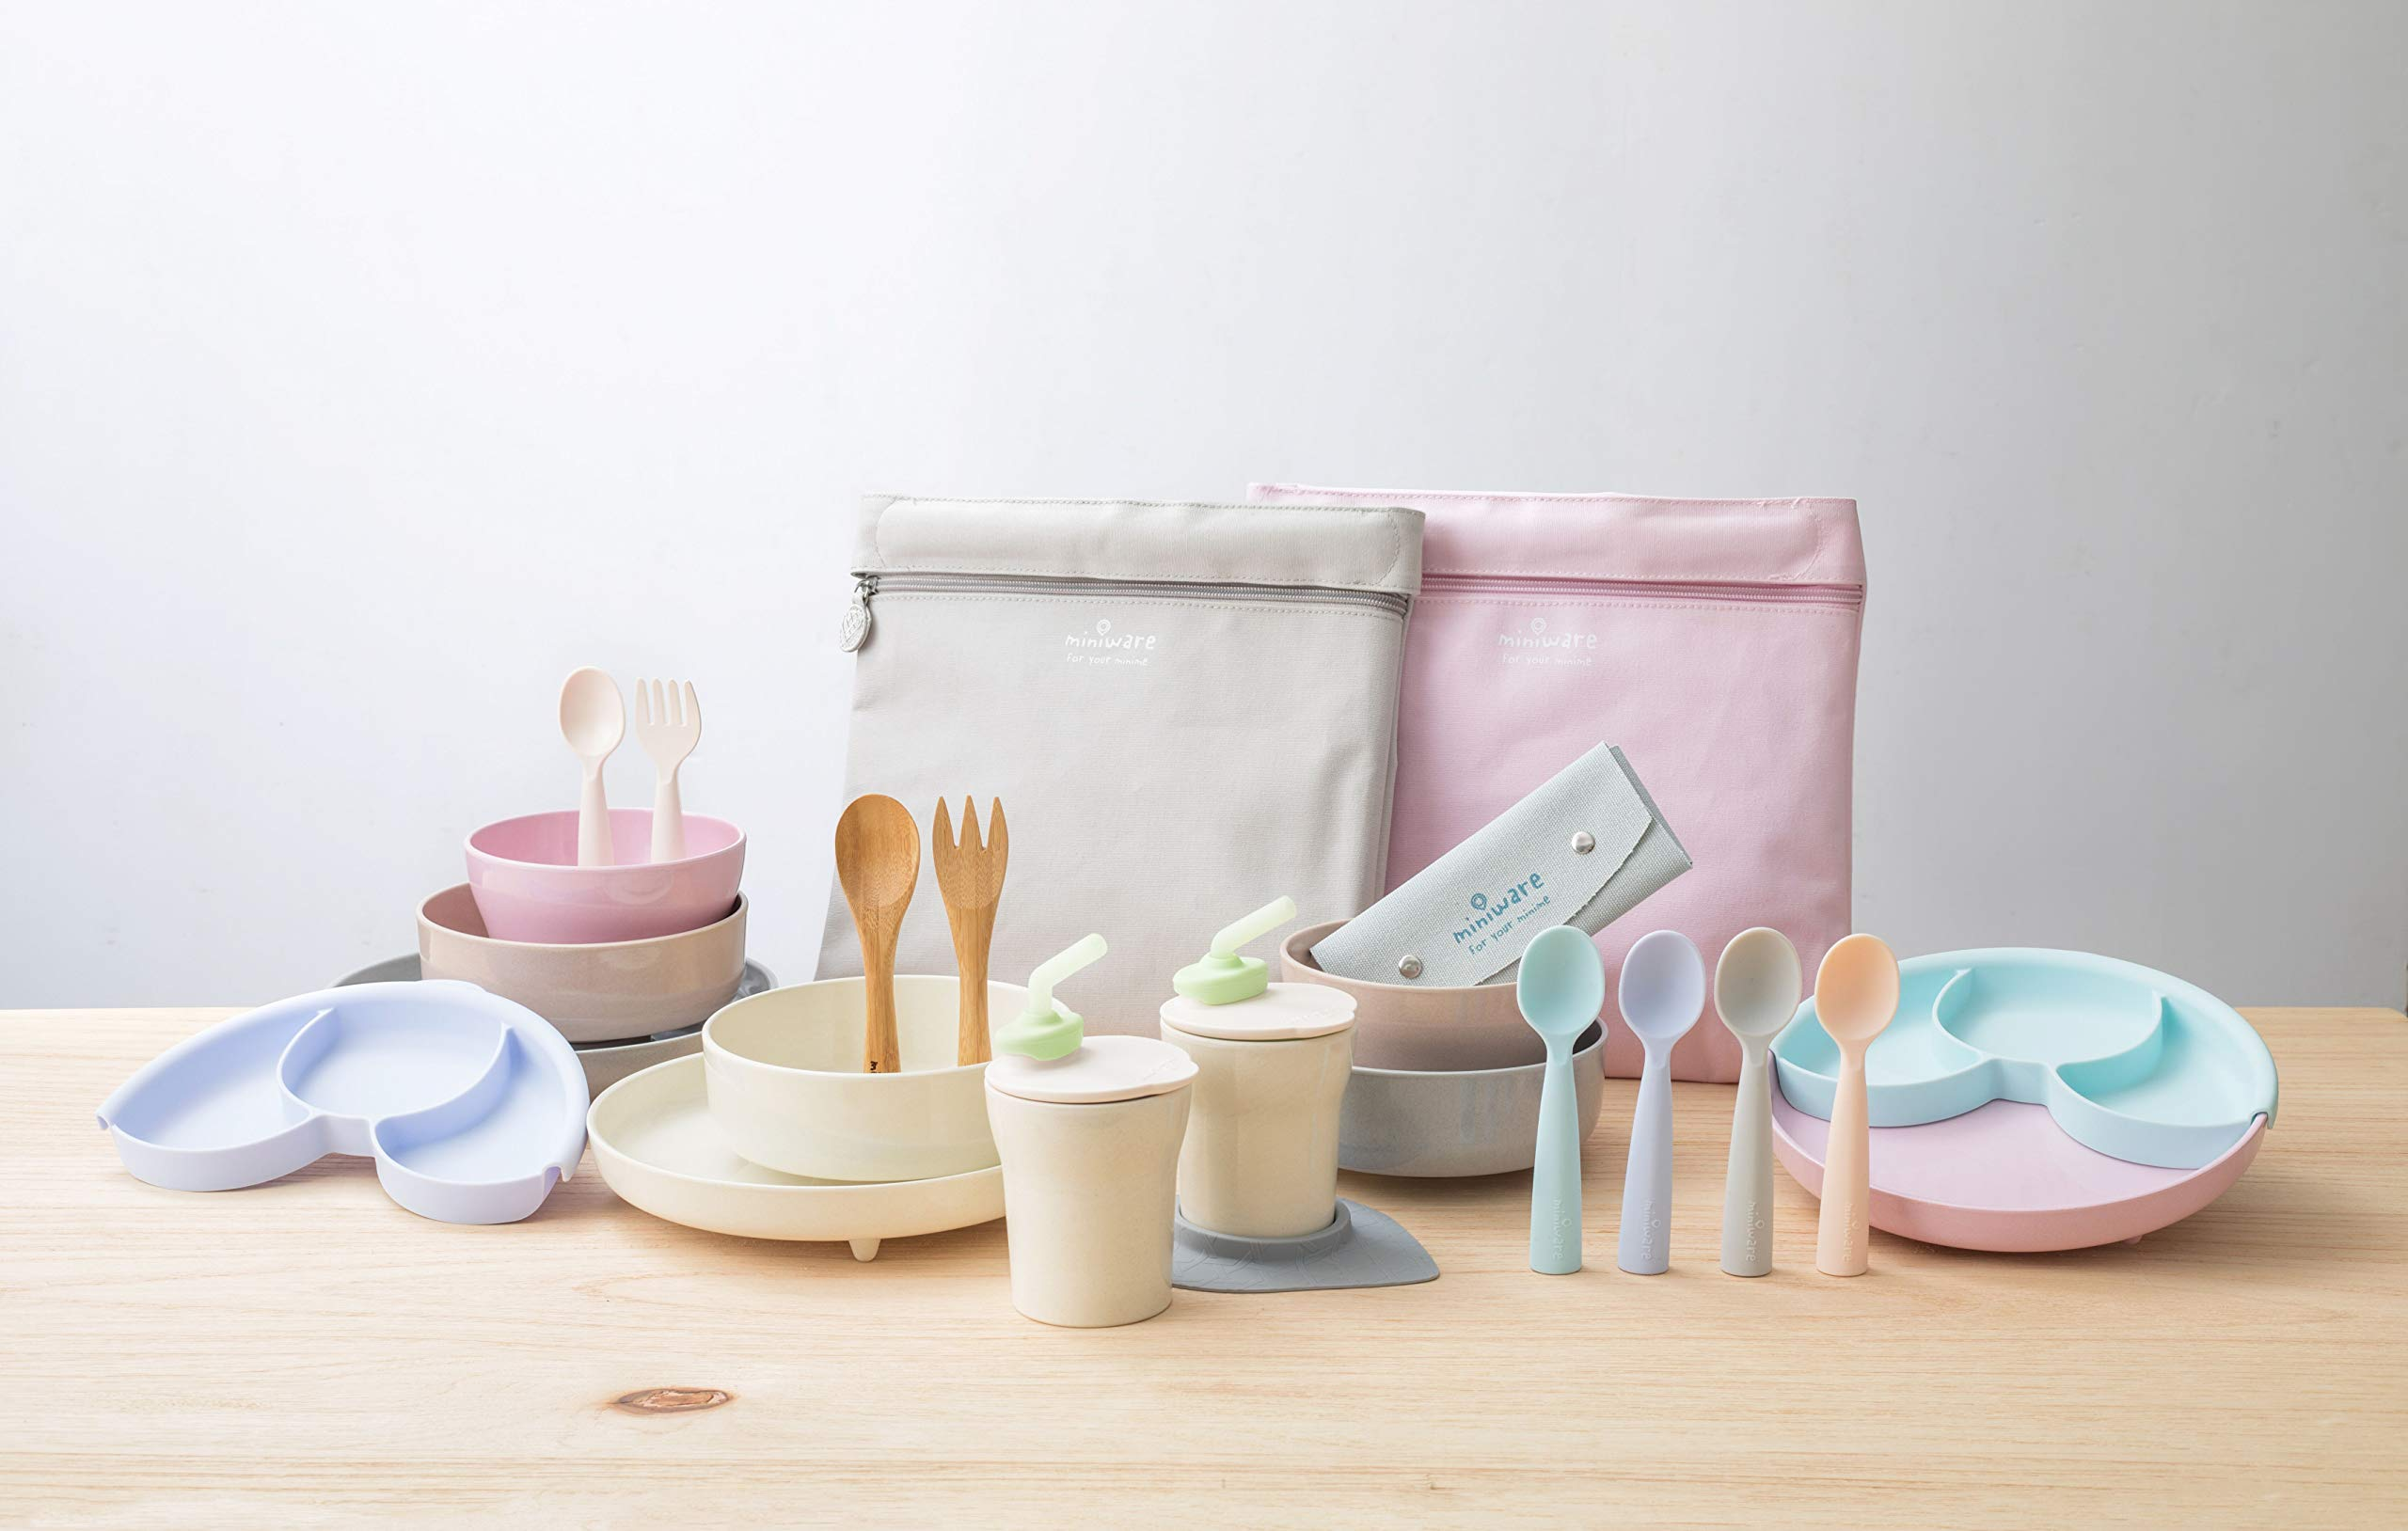 Miniware Teething Spoon Cutlery Set with Carrying Case for Baby Toddler Kids - Promotes Self Feeding | 100% Food Grade Silicone | BPA Free | Modern & Durable Design | Dishwasher Safe (Grey and Aqua) by Miniware